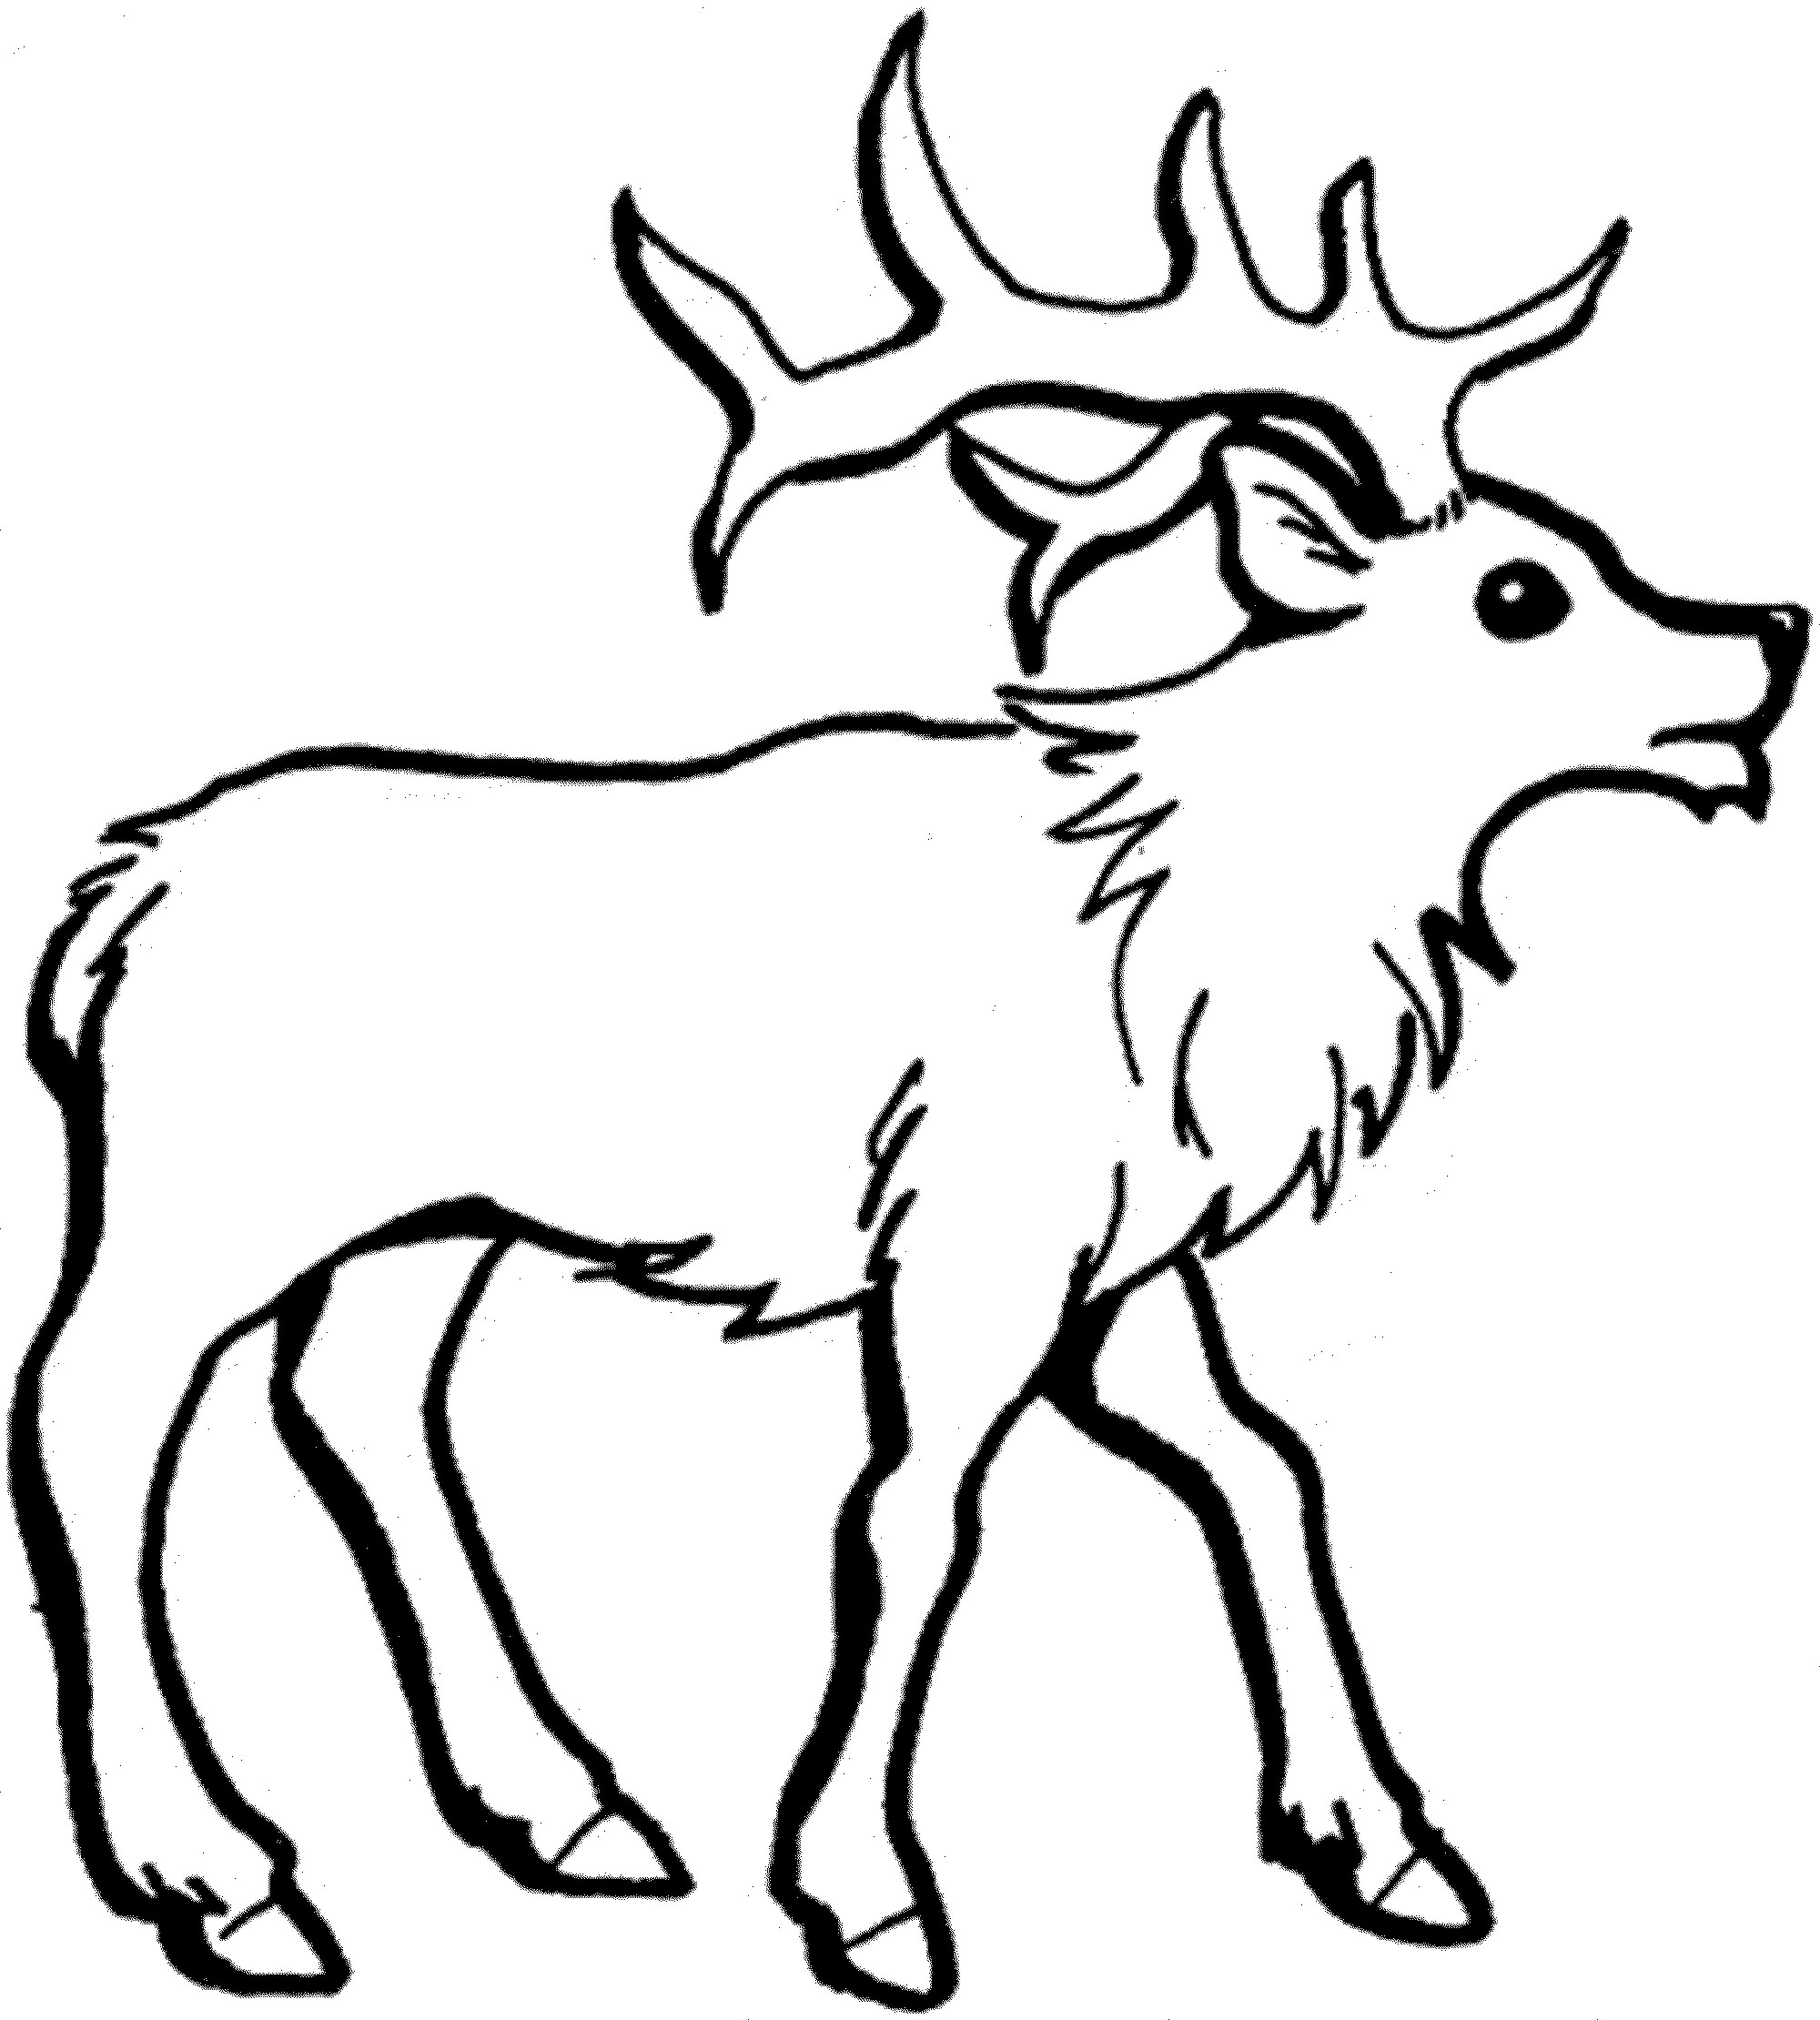 2000x2220 Rudolph The Red Nosed Reindeer Coloring Pages Hellokids Com Also